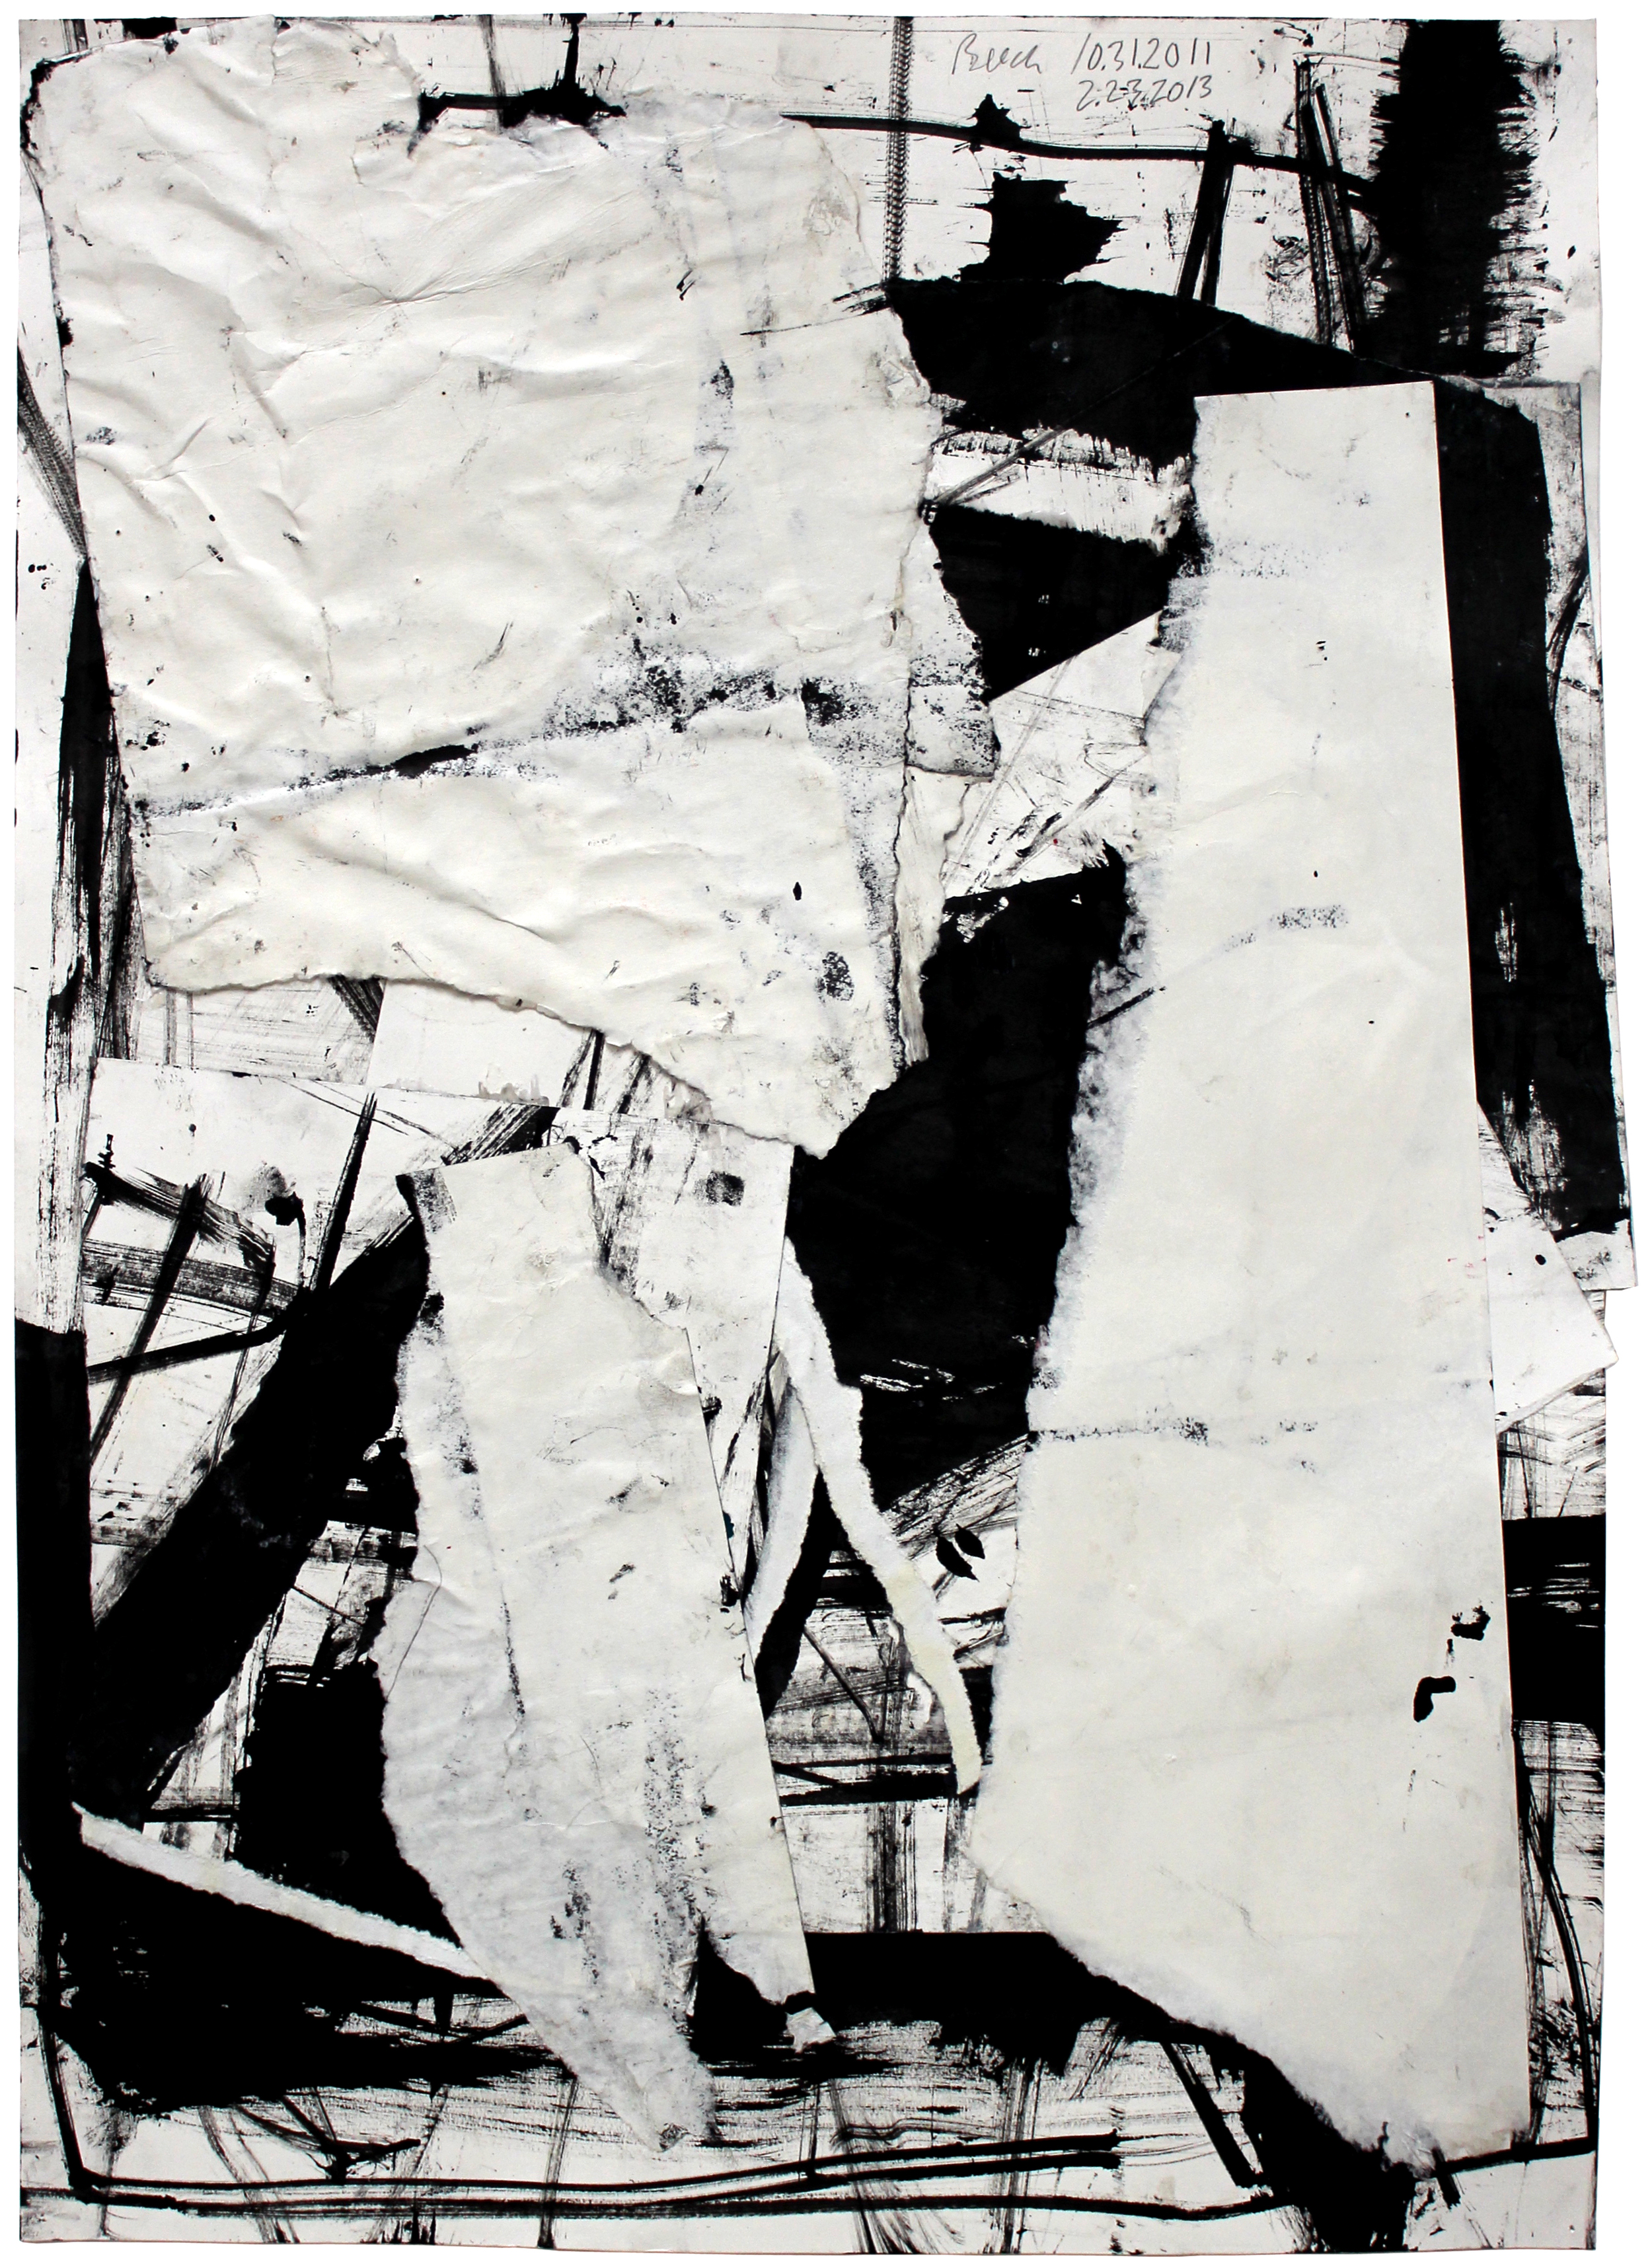 Drawing 2.23.2013 28 x 19.75 inches